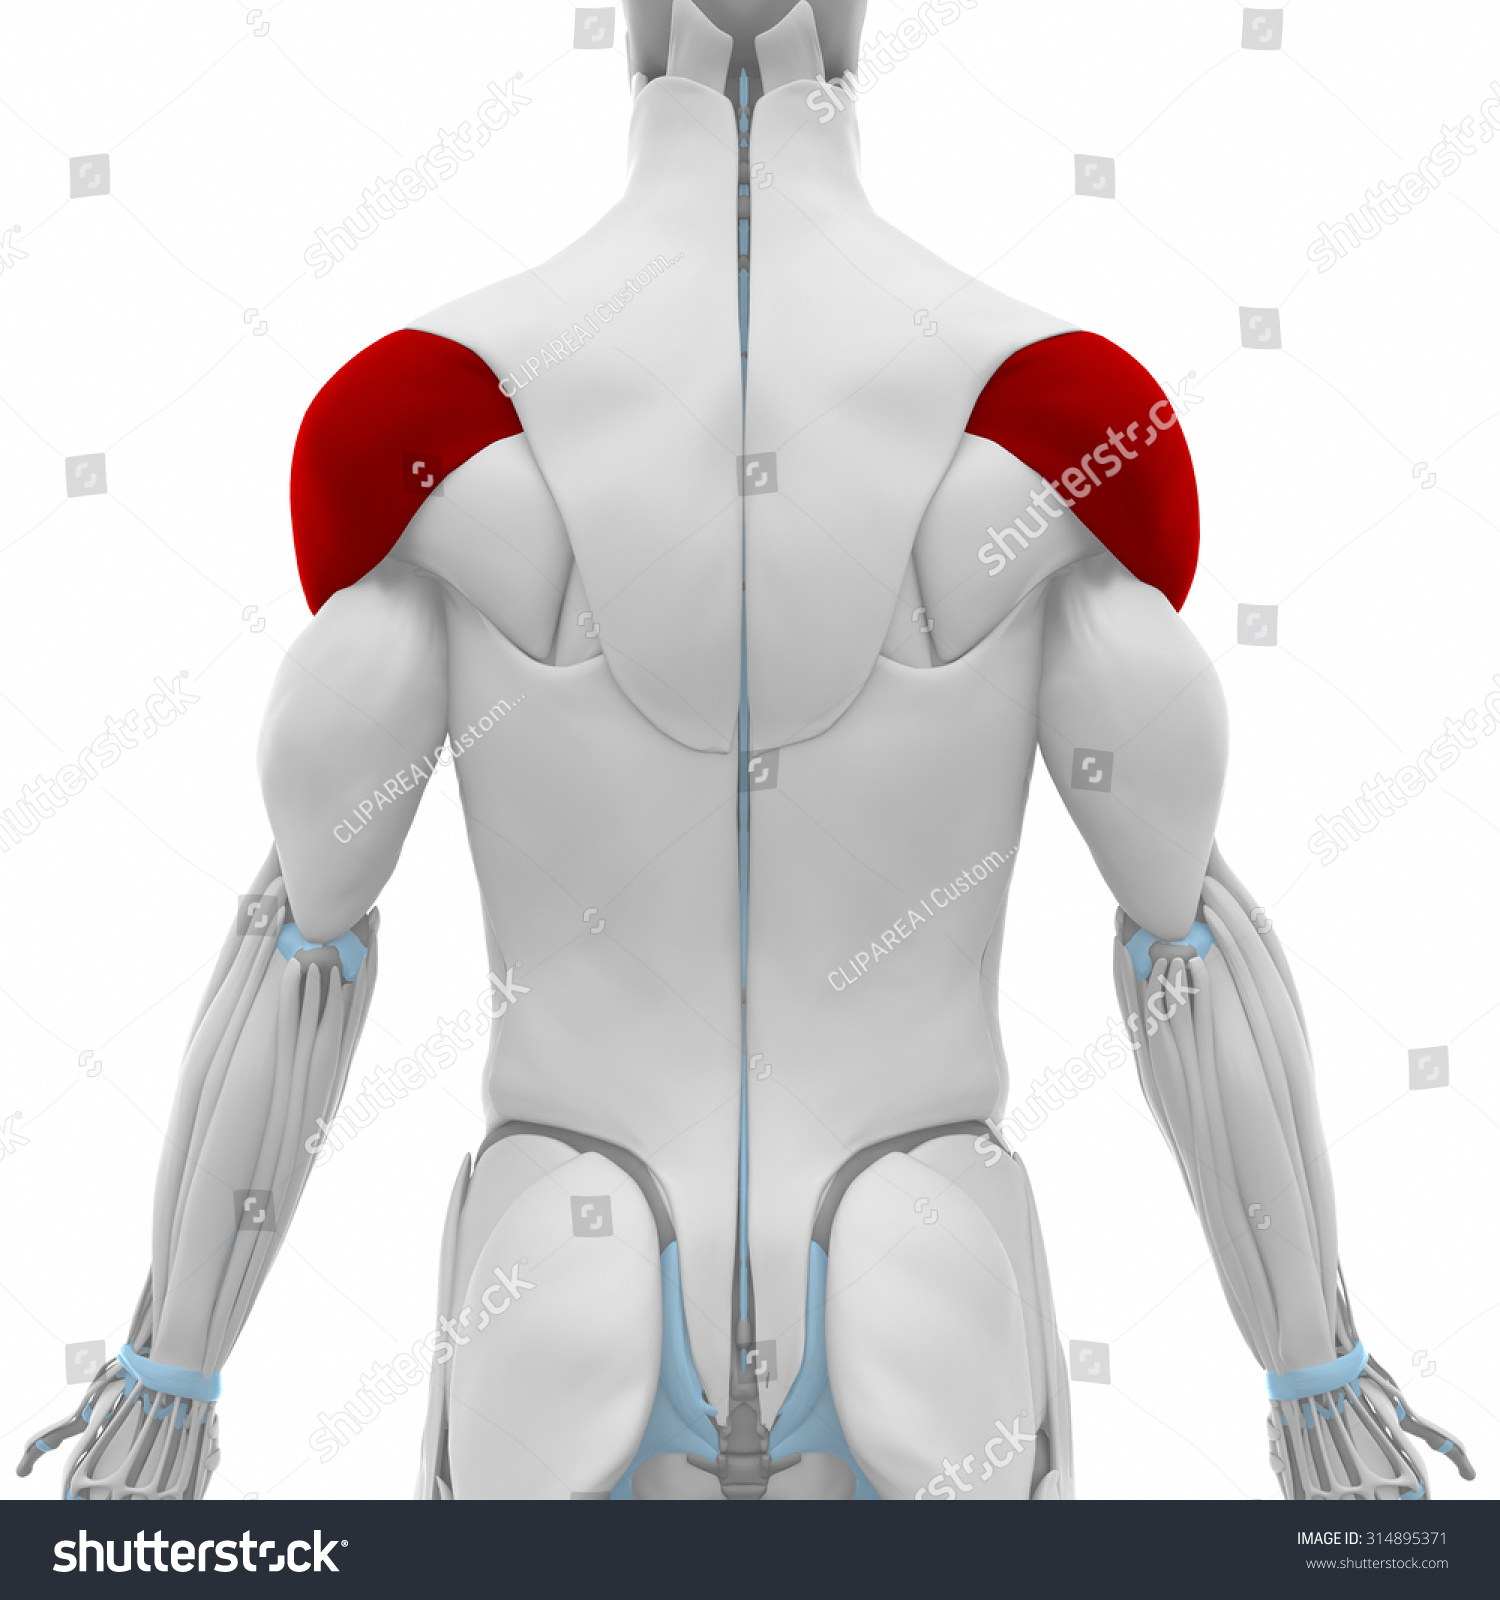 Royalty Free Stock Illustration Of Deltoid Muscles Anatomy Map Stock